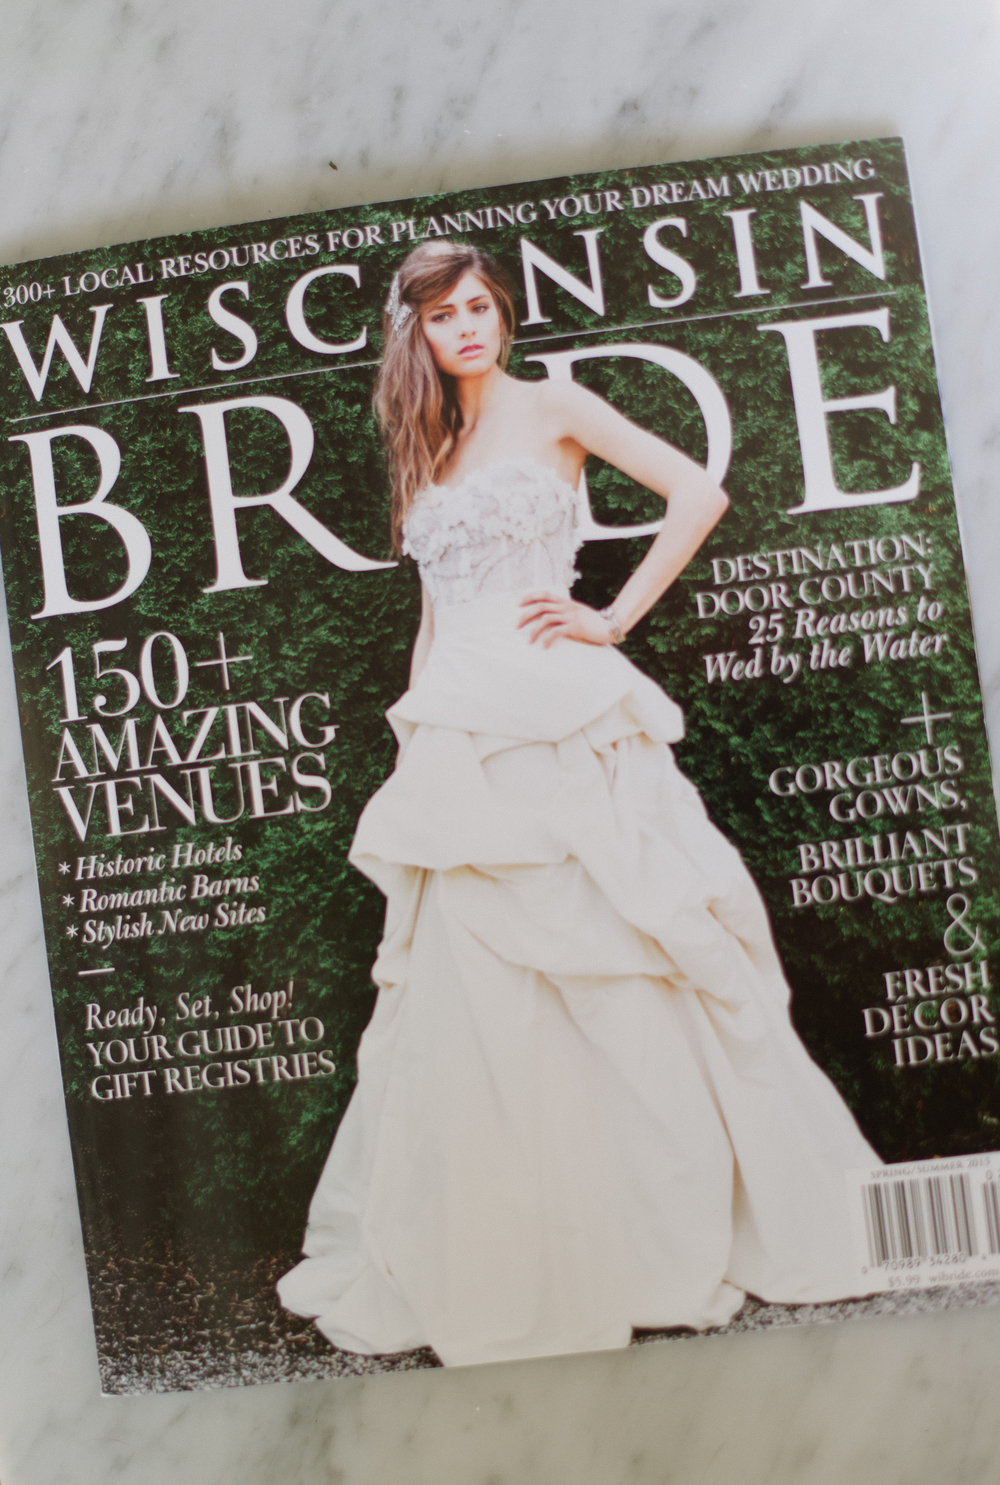 Destination wedding photographer Lexia Frank photographed NFL football player Bryan Bulaga's wedding in wisconsin, and it was published in Wisconsin Bride Magazine. Lexia is a film photographer on the west coast photographing destination weddings worldwide and luxury and celebrity weddings.